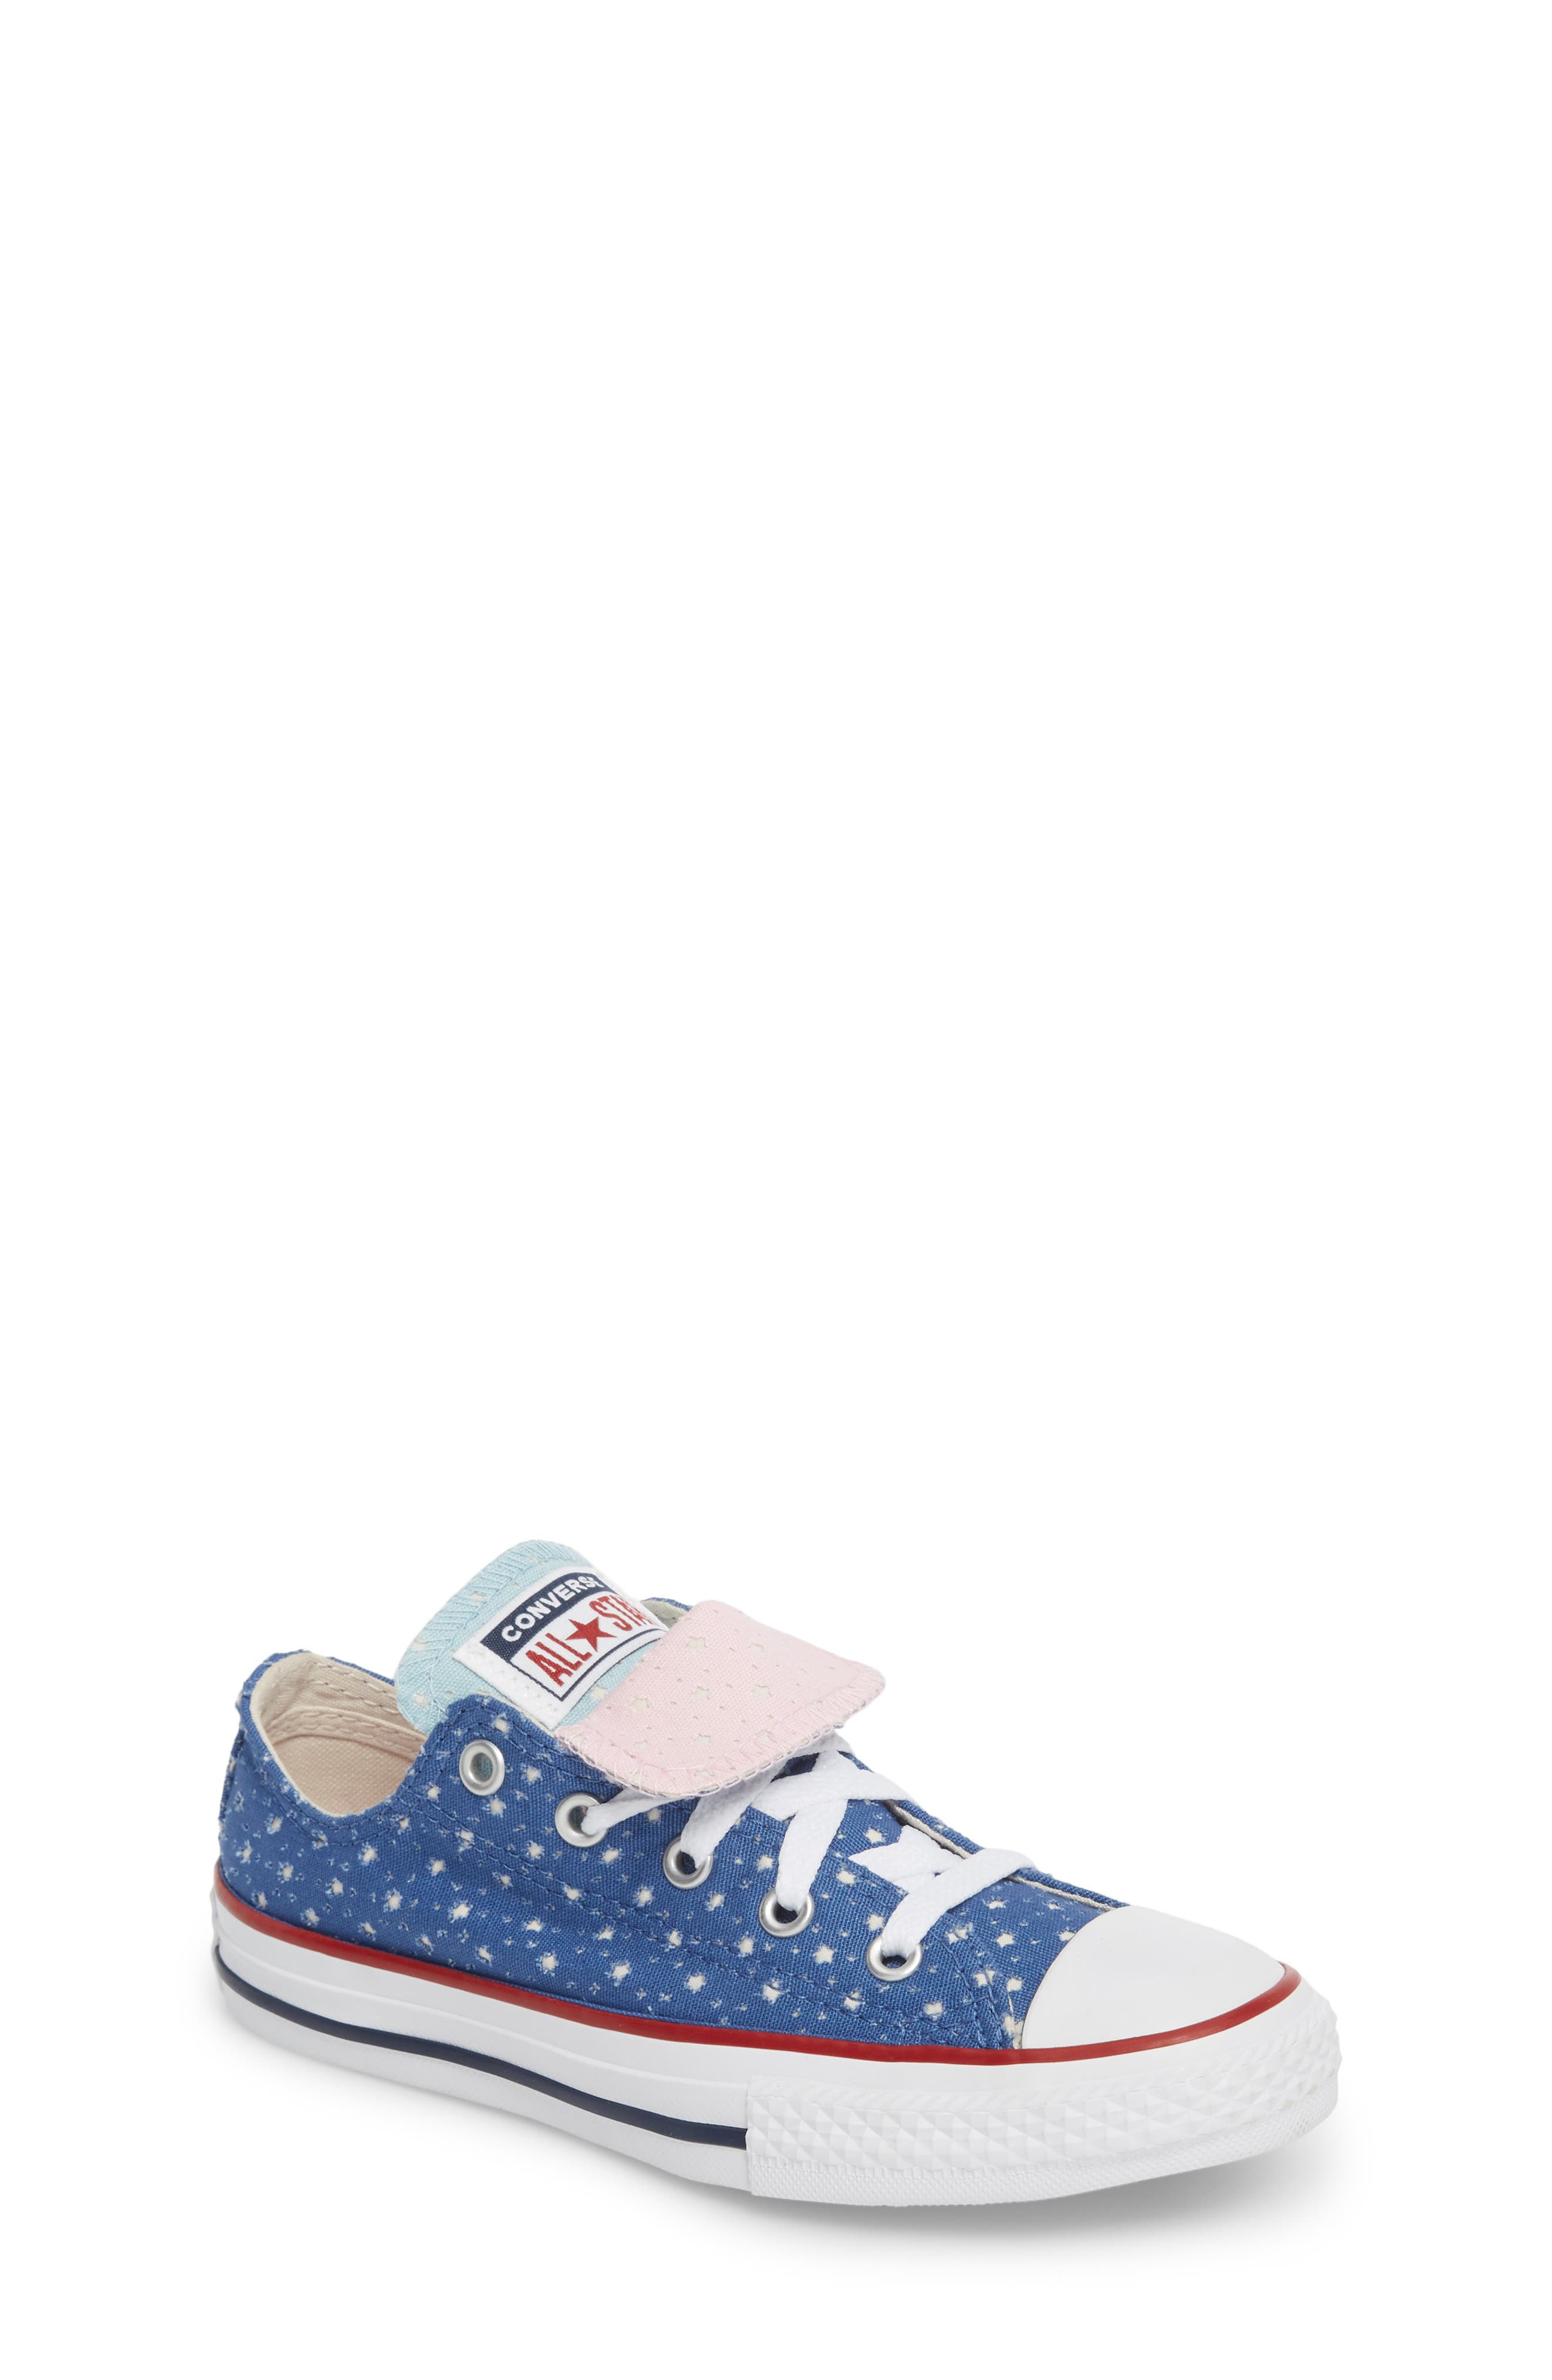 Chuck Taylor<sup>®</sup> All Star<sup>®</sup> Double Tongue Sneaker,                             Main thumbnail 1, color,                             Nightfall Blue